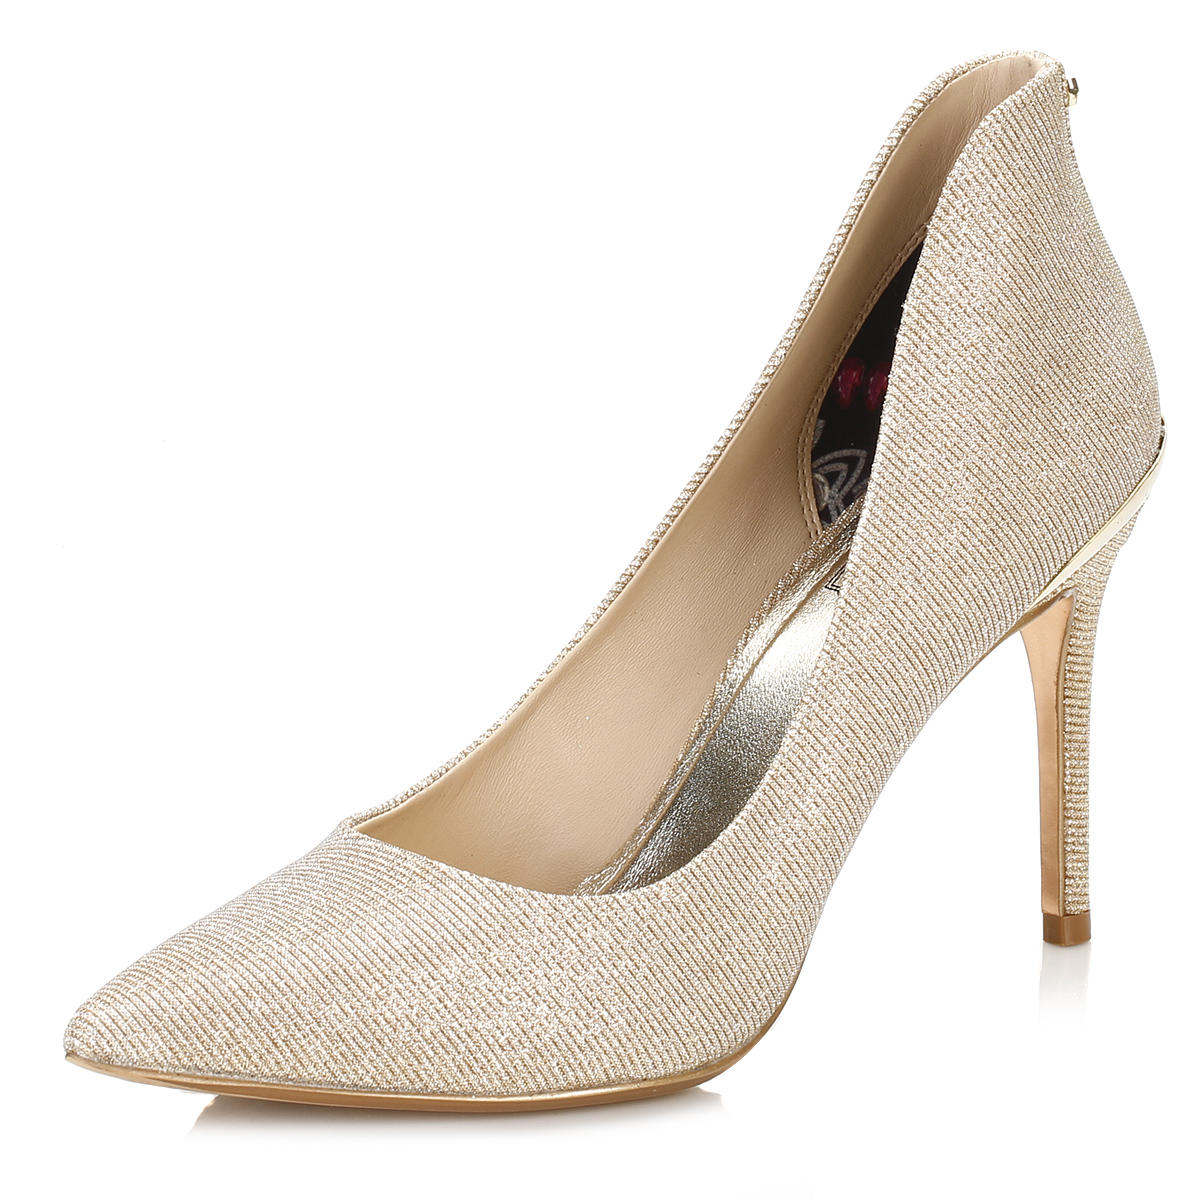 Ted Baker Womens Court Shoes, Gold Sparkle, High Heel Stiletto ...